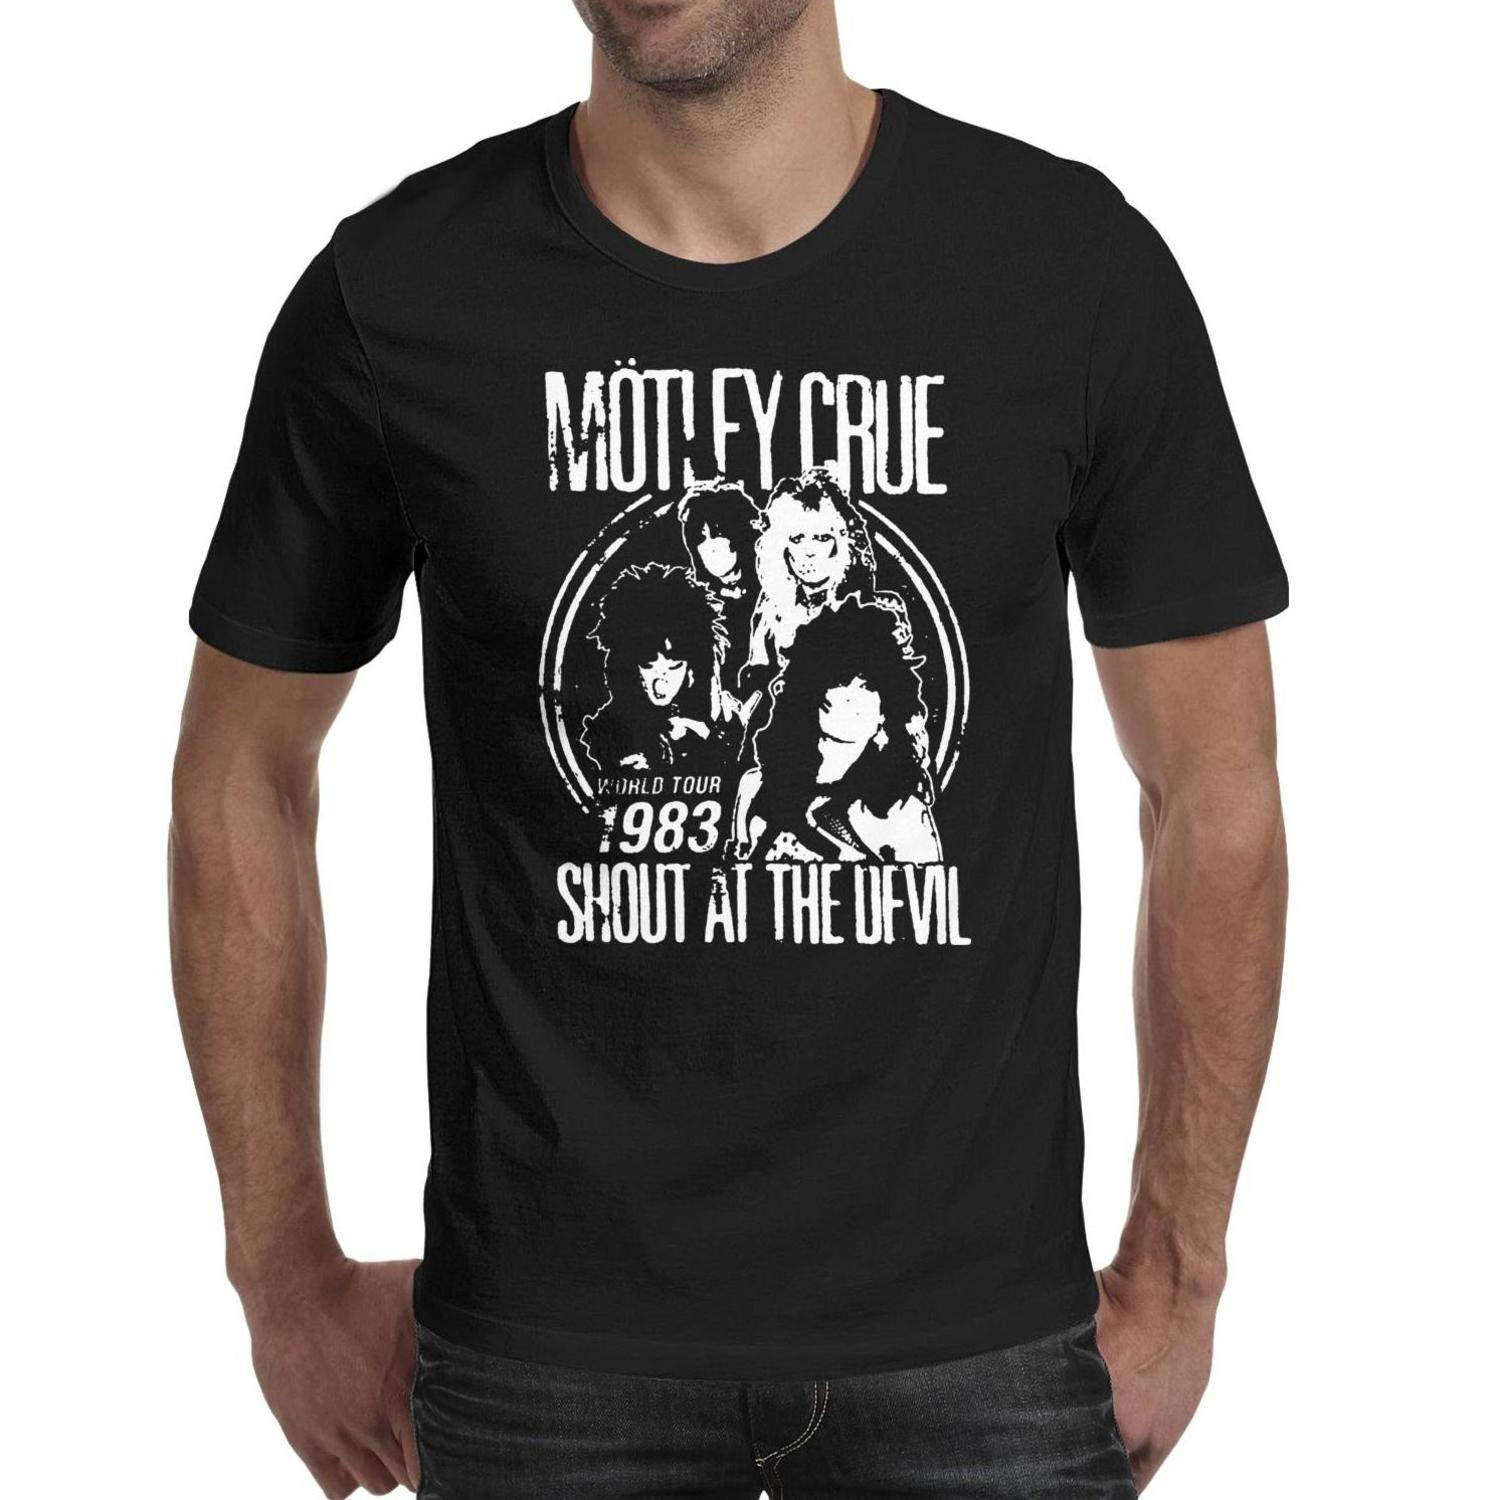 9a3fc9b9932d Men S Cotton T Shirt Motley Crue Shout At Devil Art Funny Cool Tee Printed  T Shirt 2018 Fashion Brand Top Tee T Shirts Funky Tee Shirt For Sale From  Baishi7 ...